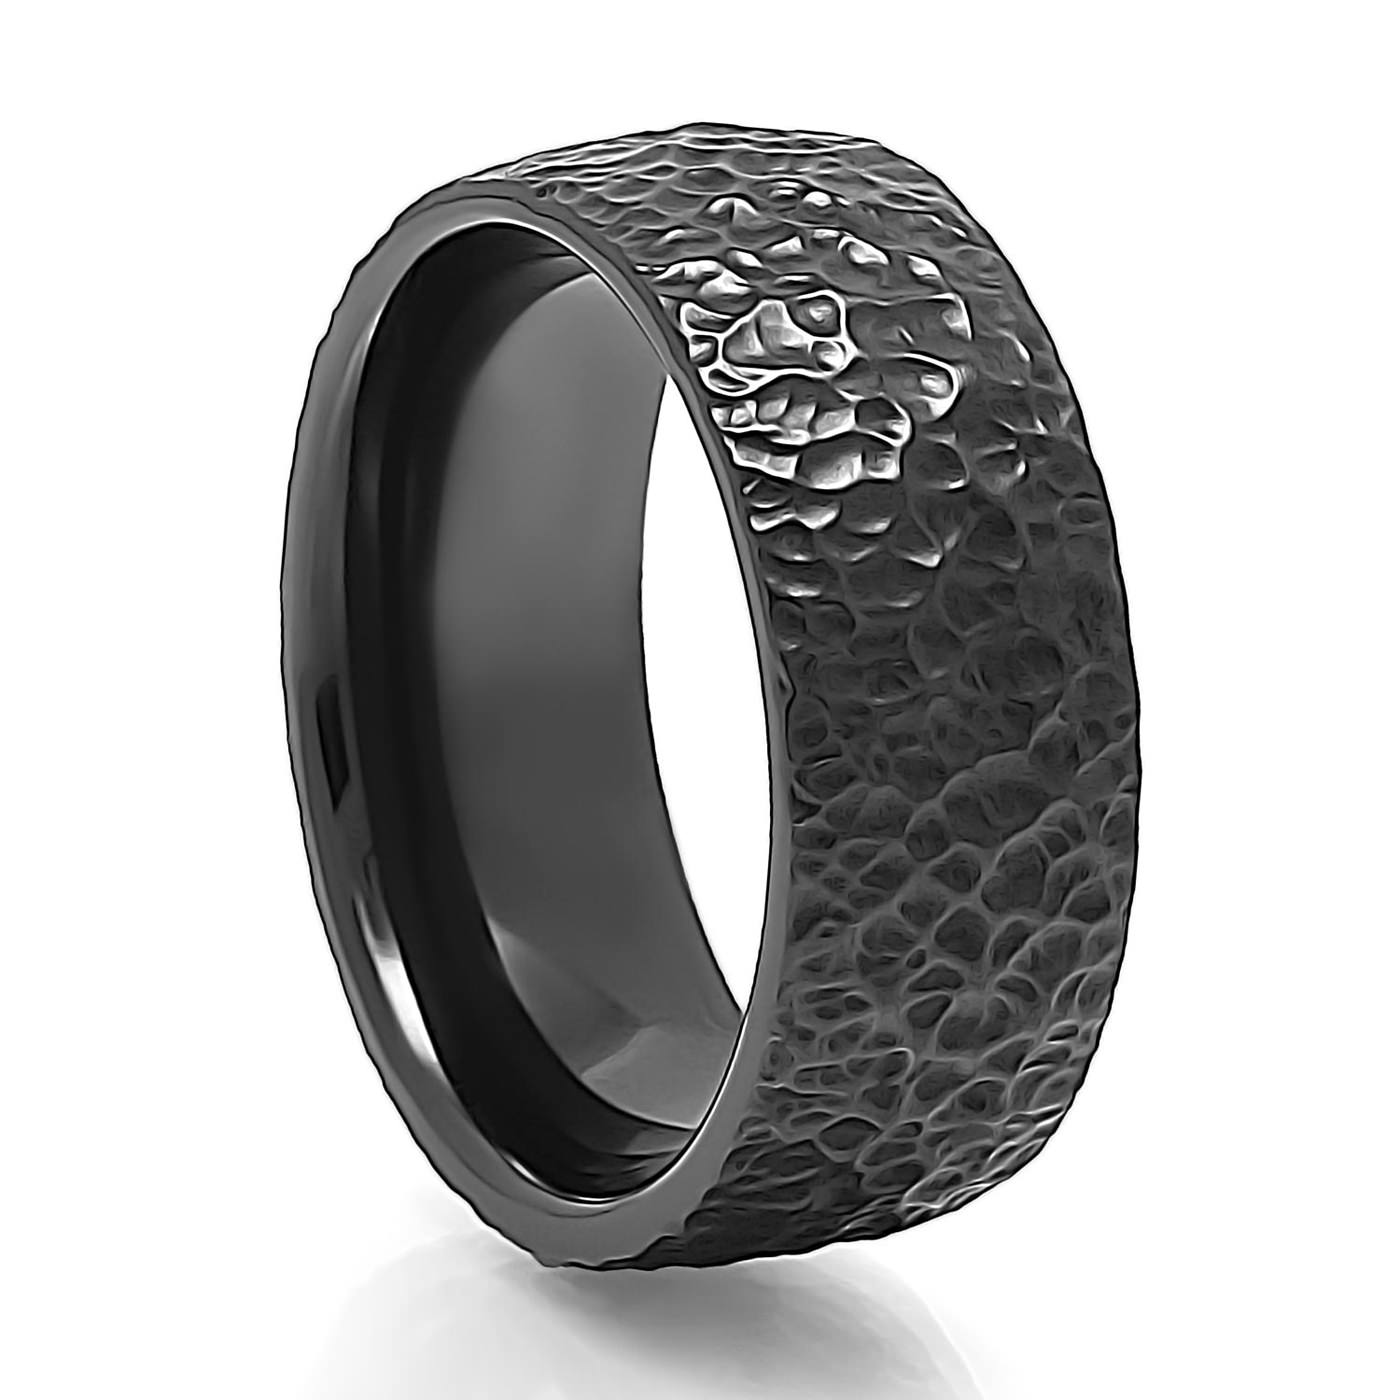 black ring sizes faceted for in men dp wedding rings available amazon to ceramic band mens com jewelry edge and womens